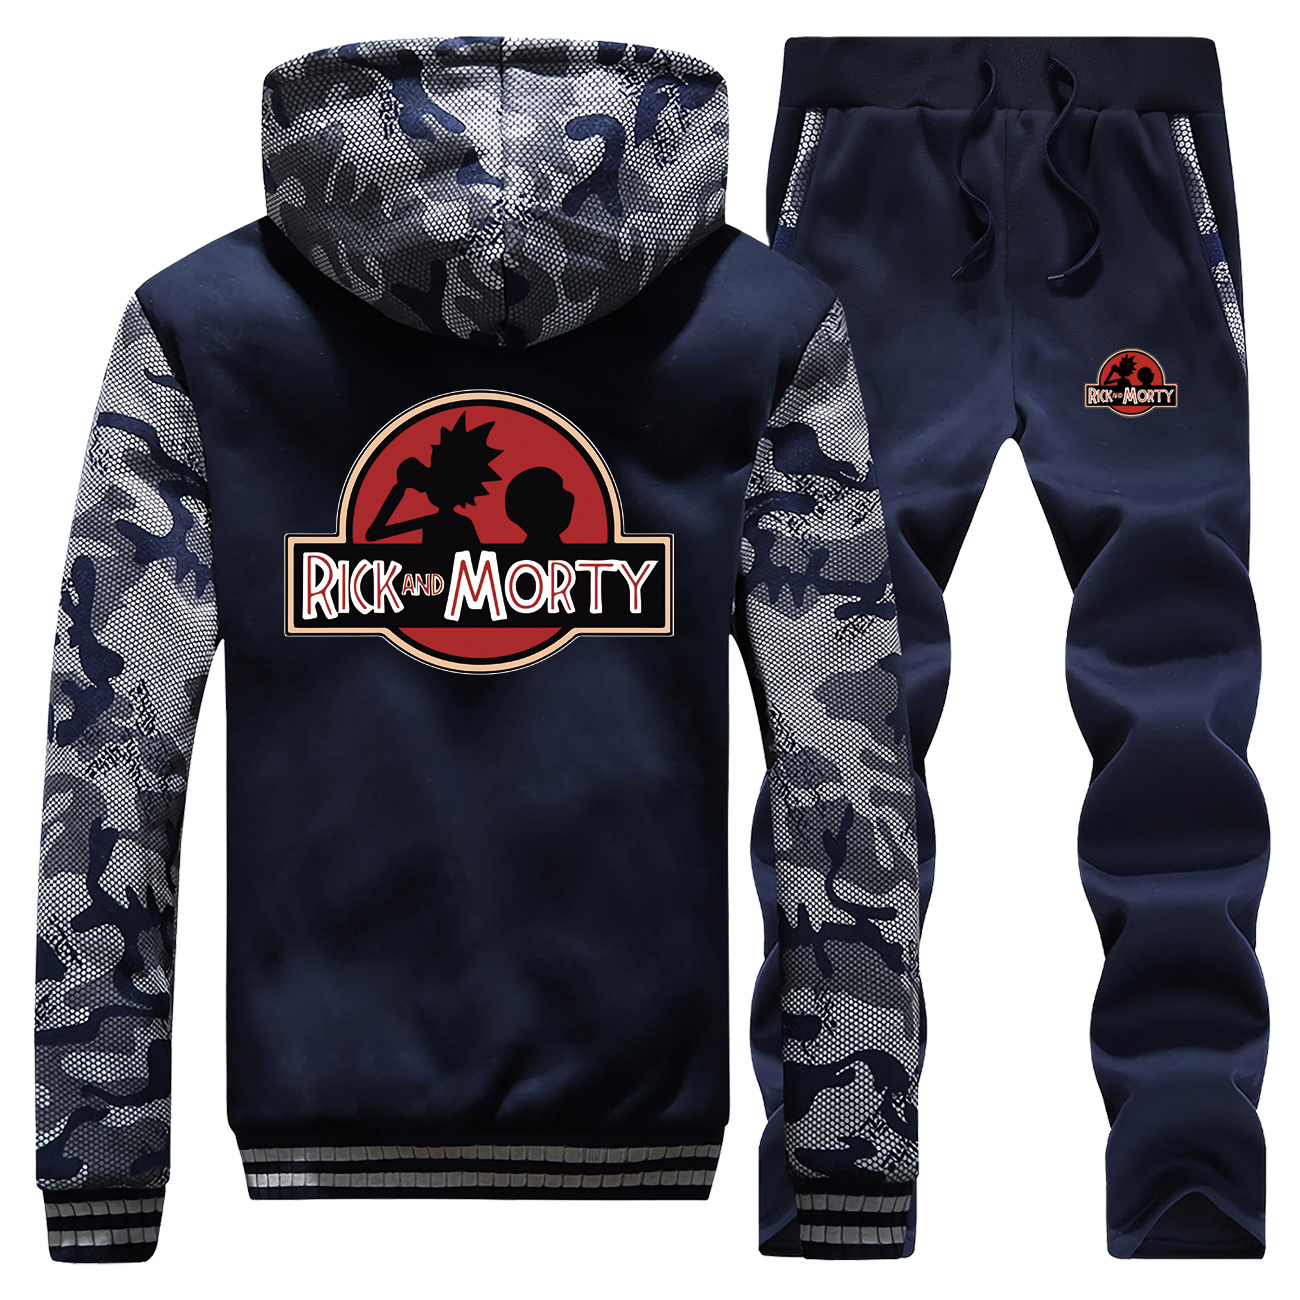 Coat Thick Camouflage Mens Sweatshirt Hooded 2019 Winter Suit Rick And Morty Sportswear Fashion Warm Jacket+2 Piece Set Pants